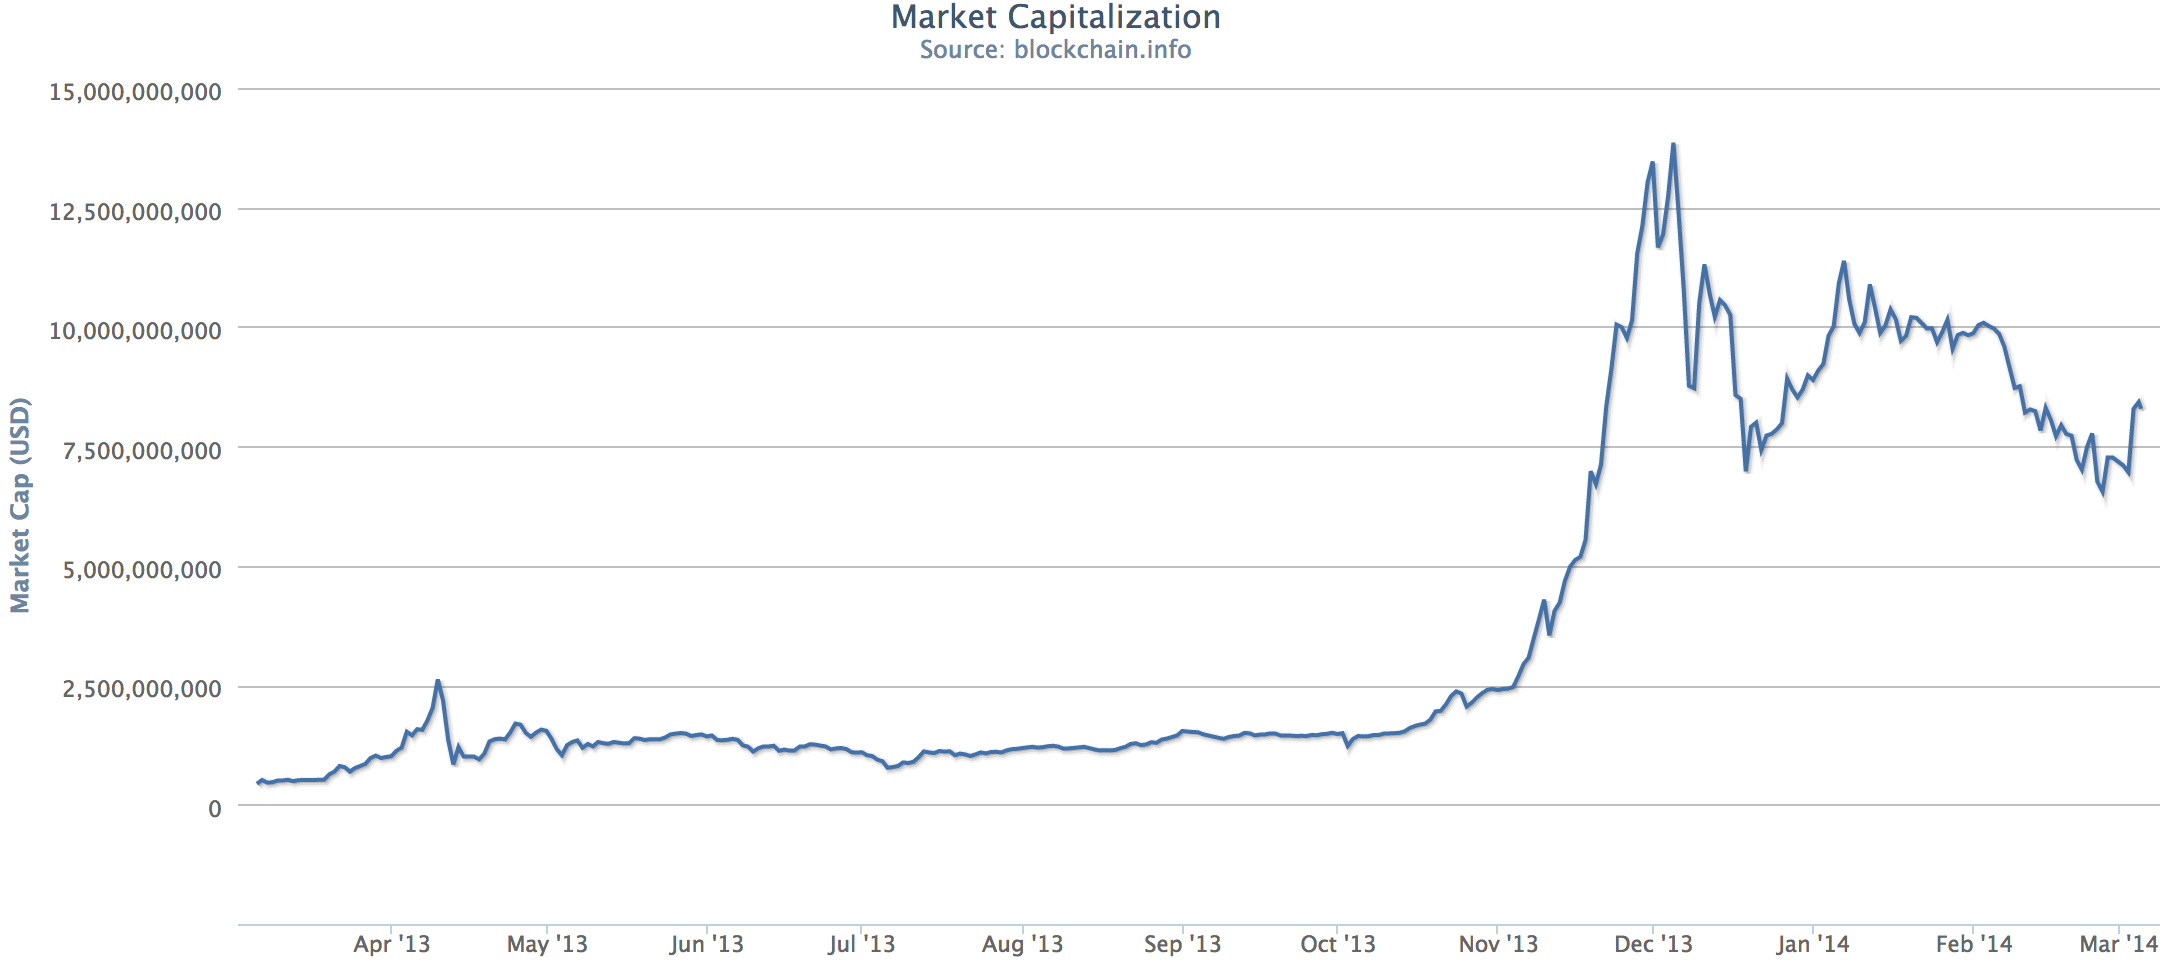 Late last year, bitcoin almost hit a $14bn market cap. Not to mention the economy it creates. Source: Blockchain.info